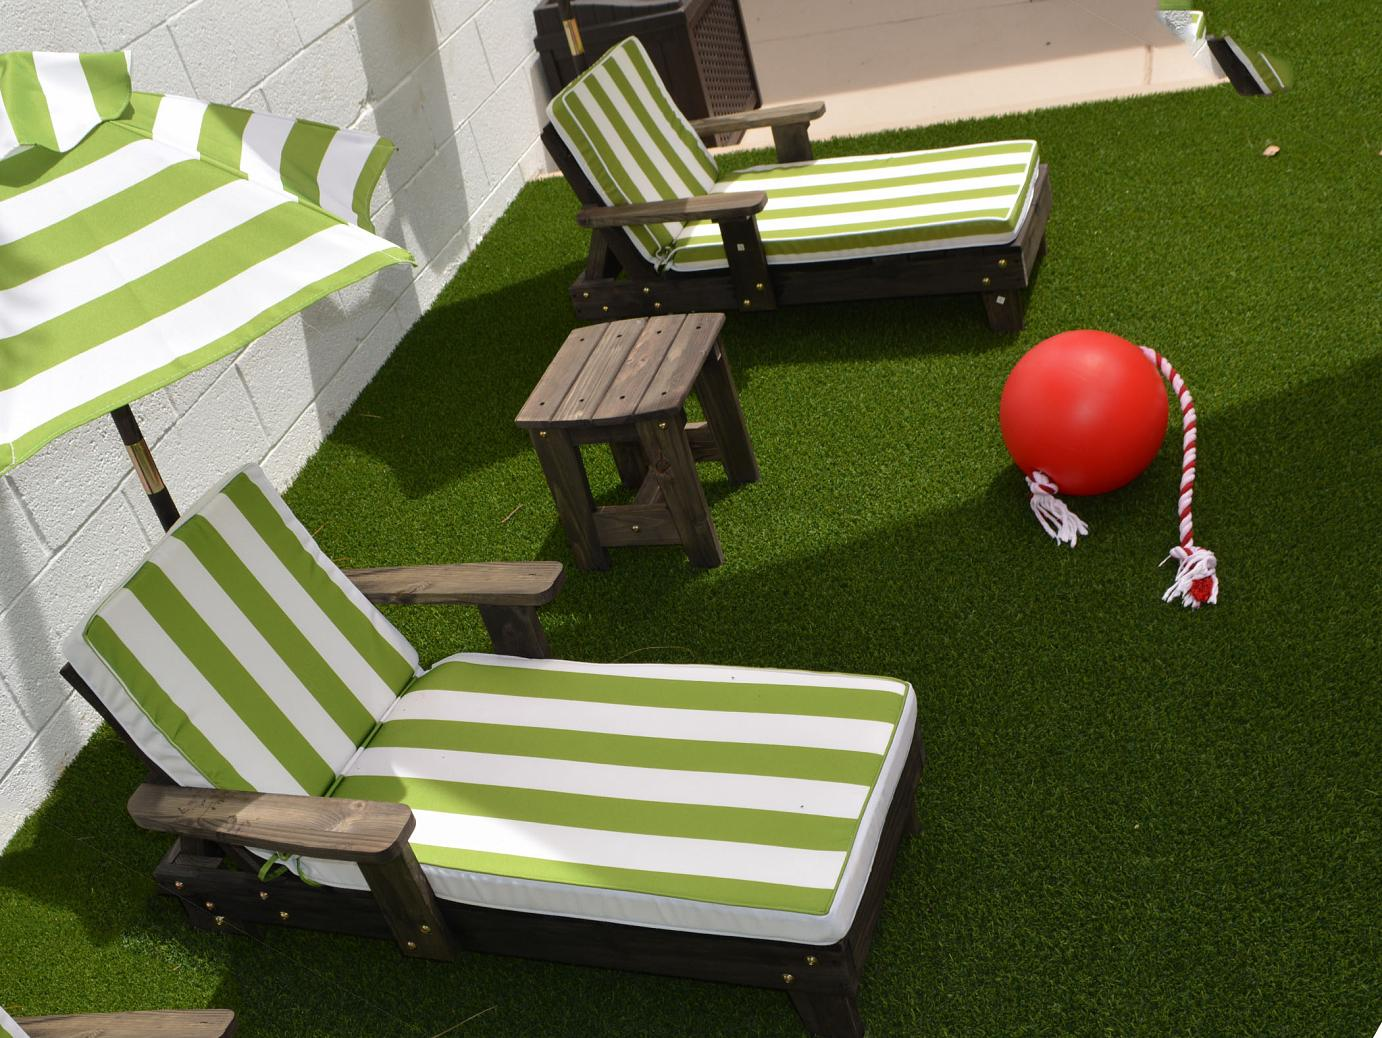 outdoor carpet monterey park, new mexico garden ideas, backyard ideas